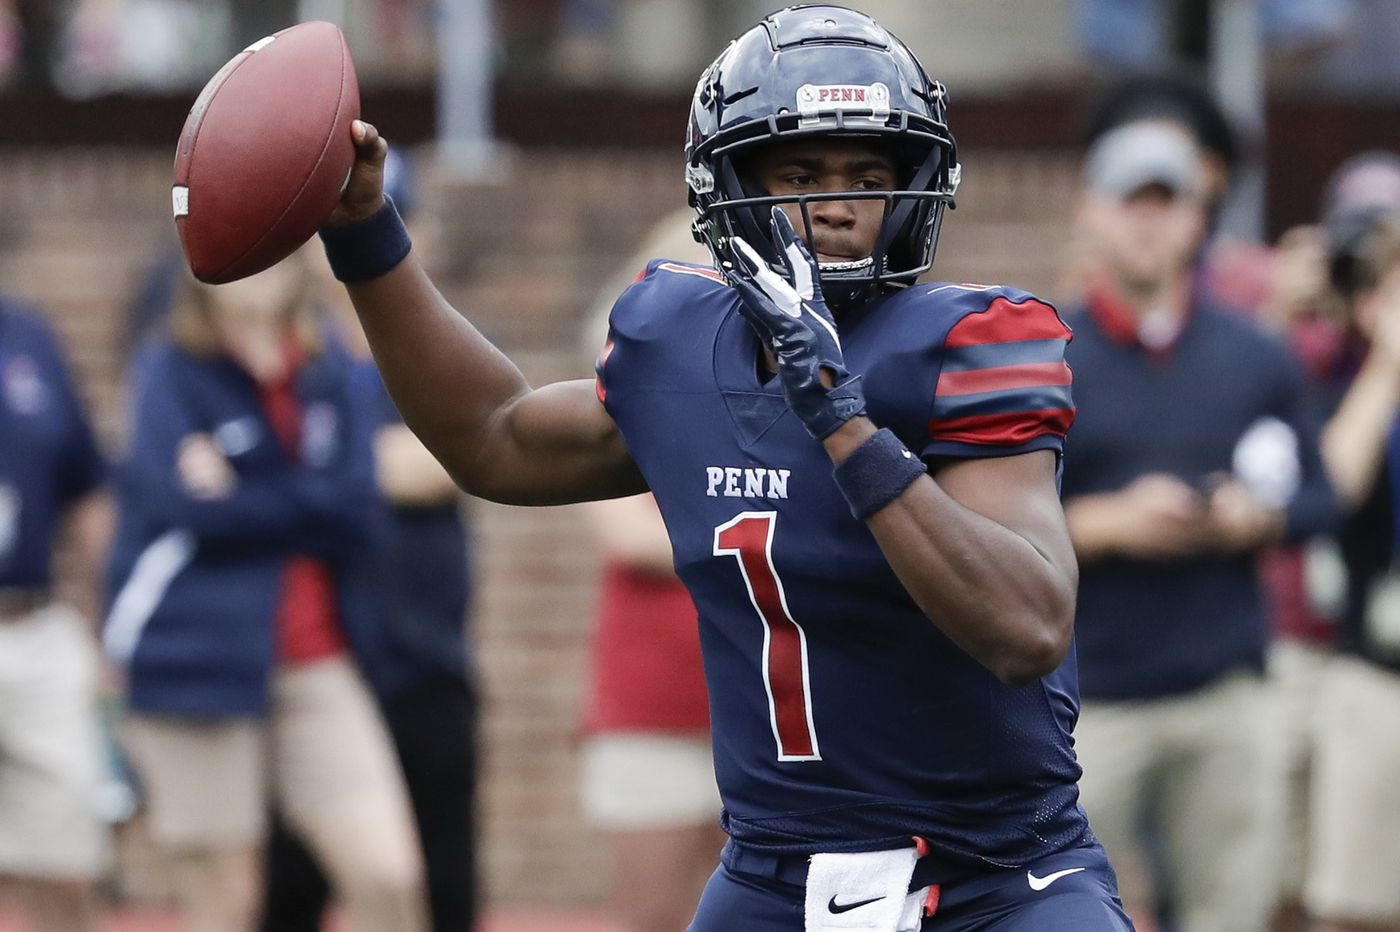 Penn beats Columbia despite red-zone struggles